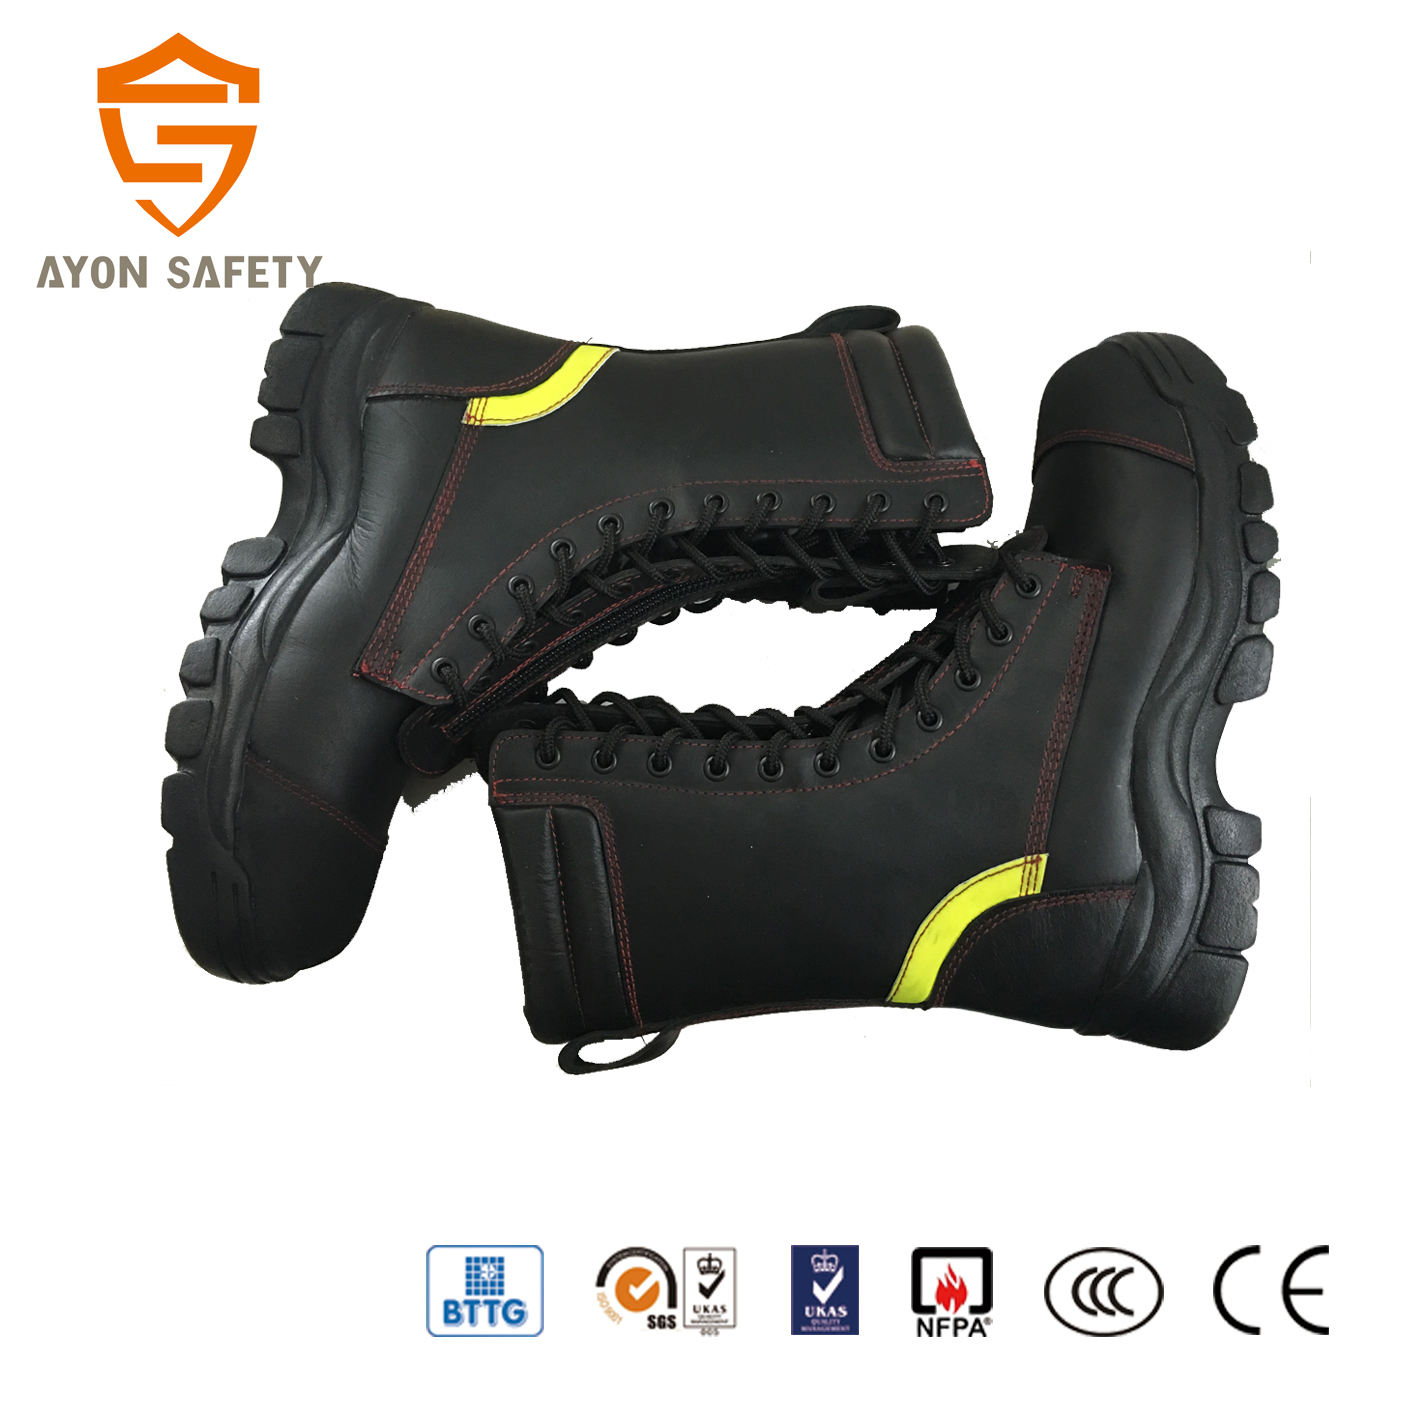 Nouveau design cuir <span class=keywords><strong>Pompier</strong></span> bottes-Ayonsafety